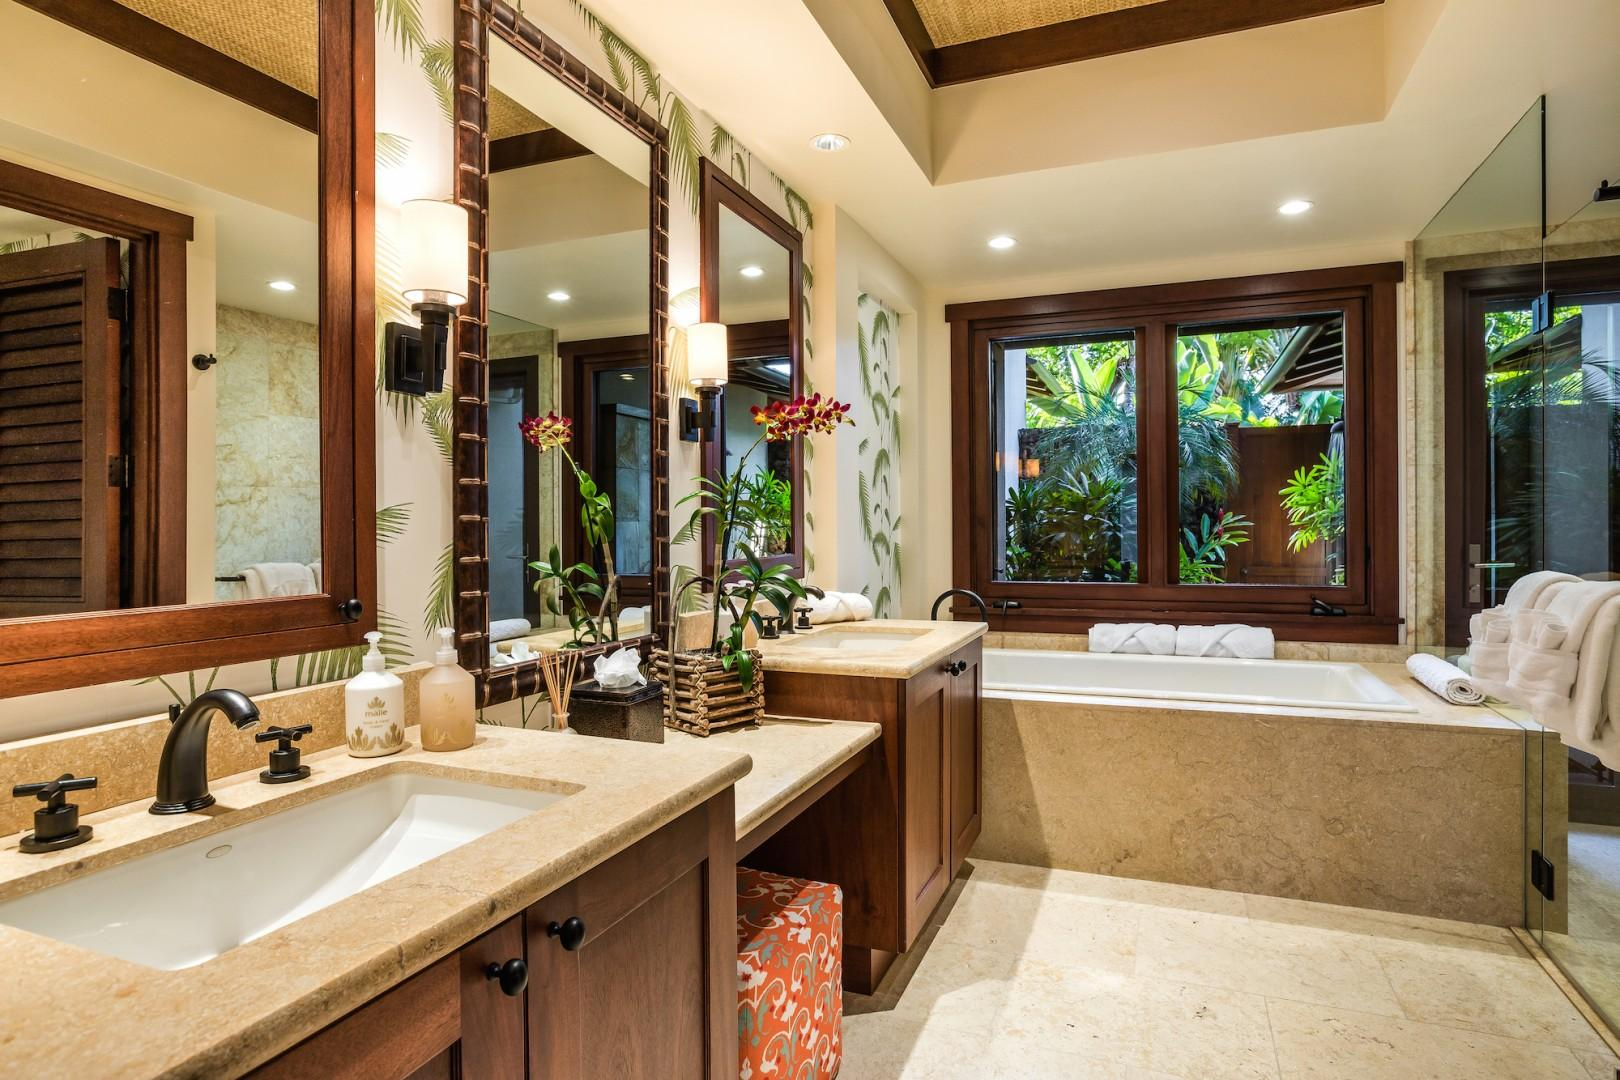 Spacious and elegant master bathroom with double vanity.